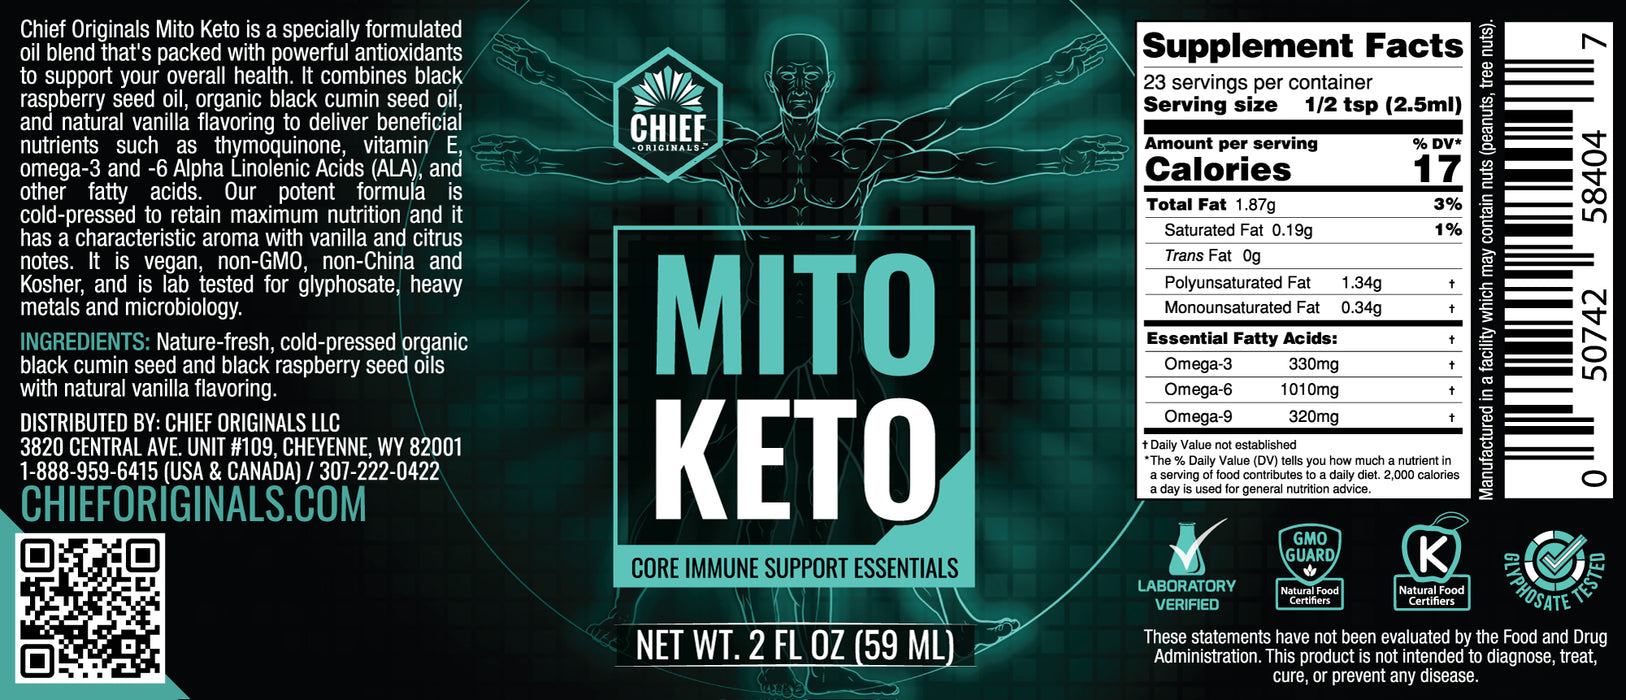 Mito Keto - Core Immune Support Essentials 2fl oz (59ml) (6-Pack)